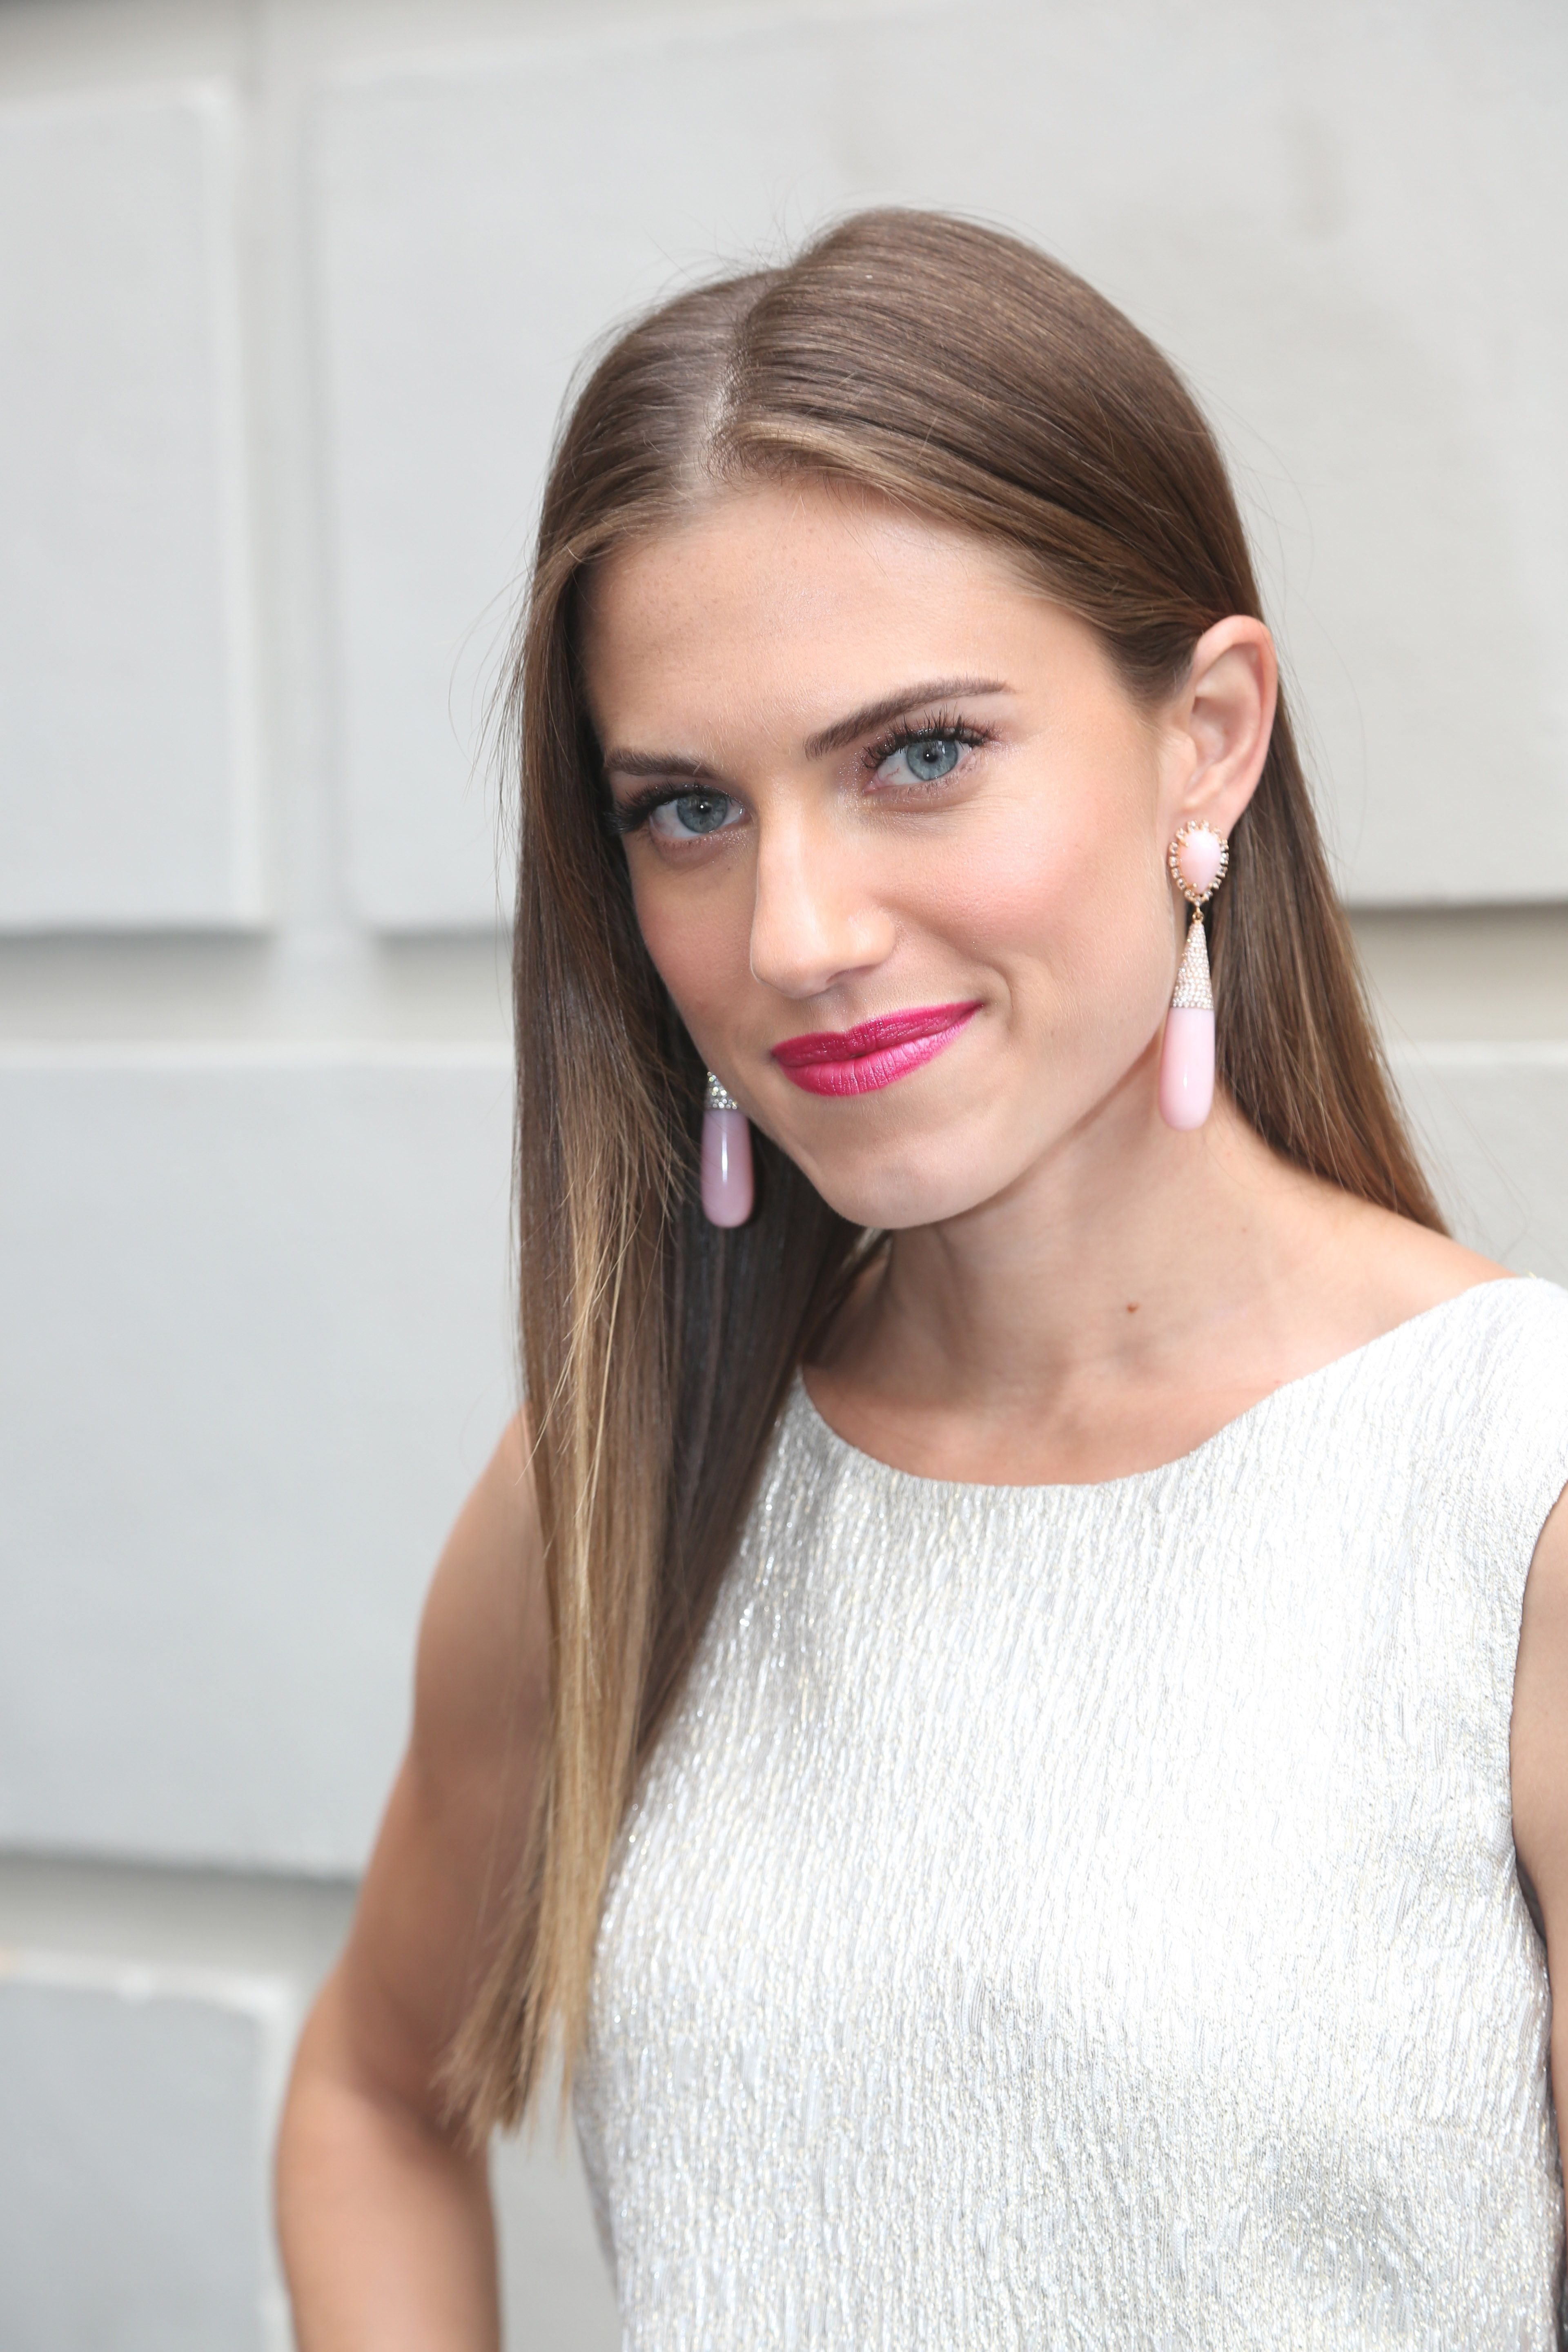 "<p>Most of us would save the shaping briefs for a special occasion, but maybe Allison Williams will persuade you to make them a daily occurrence. ""This is my gift to you: Spanx makes the most incredible exercise spandex,"" she <a href=""http://people.com/style/allison-williams-shares-topless-photos-admits-to-having-body-insecurity/"" target=""_blank"" data-tracking-id=""recirc-text-link"">said in an interview with <em data-redactor-tag=""em"" data-verified=""redactor"">Harper's Bazaar</em></a>. ""I wear them almost every day. They have a little control top, so they're flattering. I'll often stay in exercise clothes all day, which I know <a href=""http://www.marieclaire.com/fashion/news/g4397/worst-fashion-faux-pas/"" target=""_blank"" data-tracking-id=""recirc-text-link"">is a faux pas</a>.""<span class=""redactor-invisible-space"" data-verified=""redactor"" data-redactor-tag=""span"" data-redactor-class=""redactor-invisible-space""></span></p>"